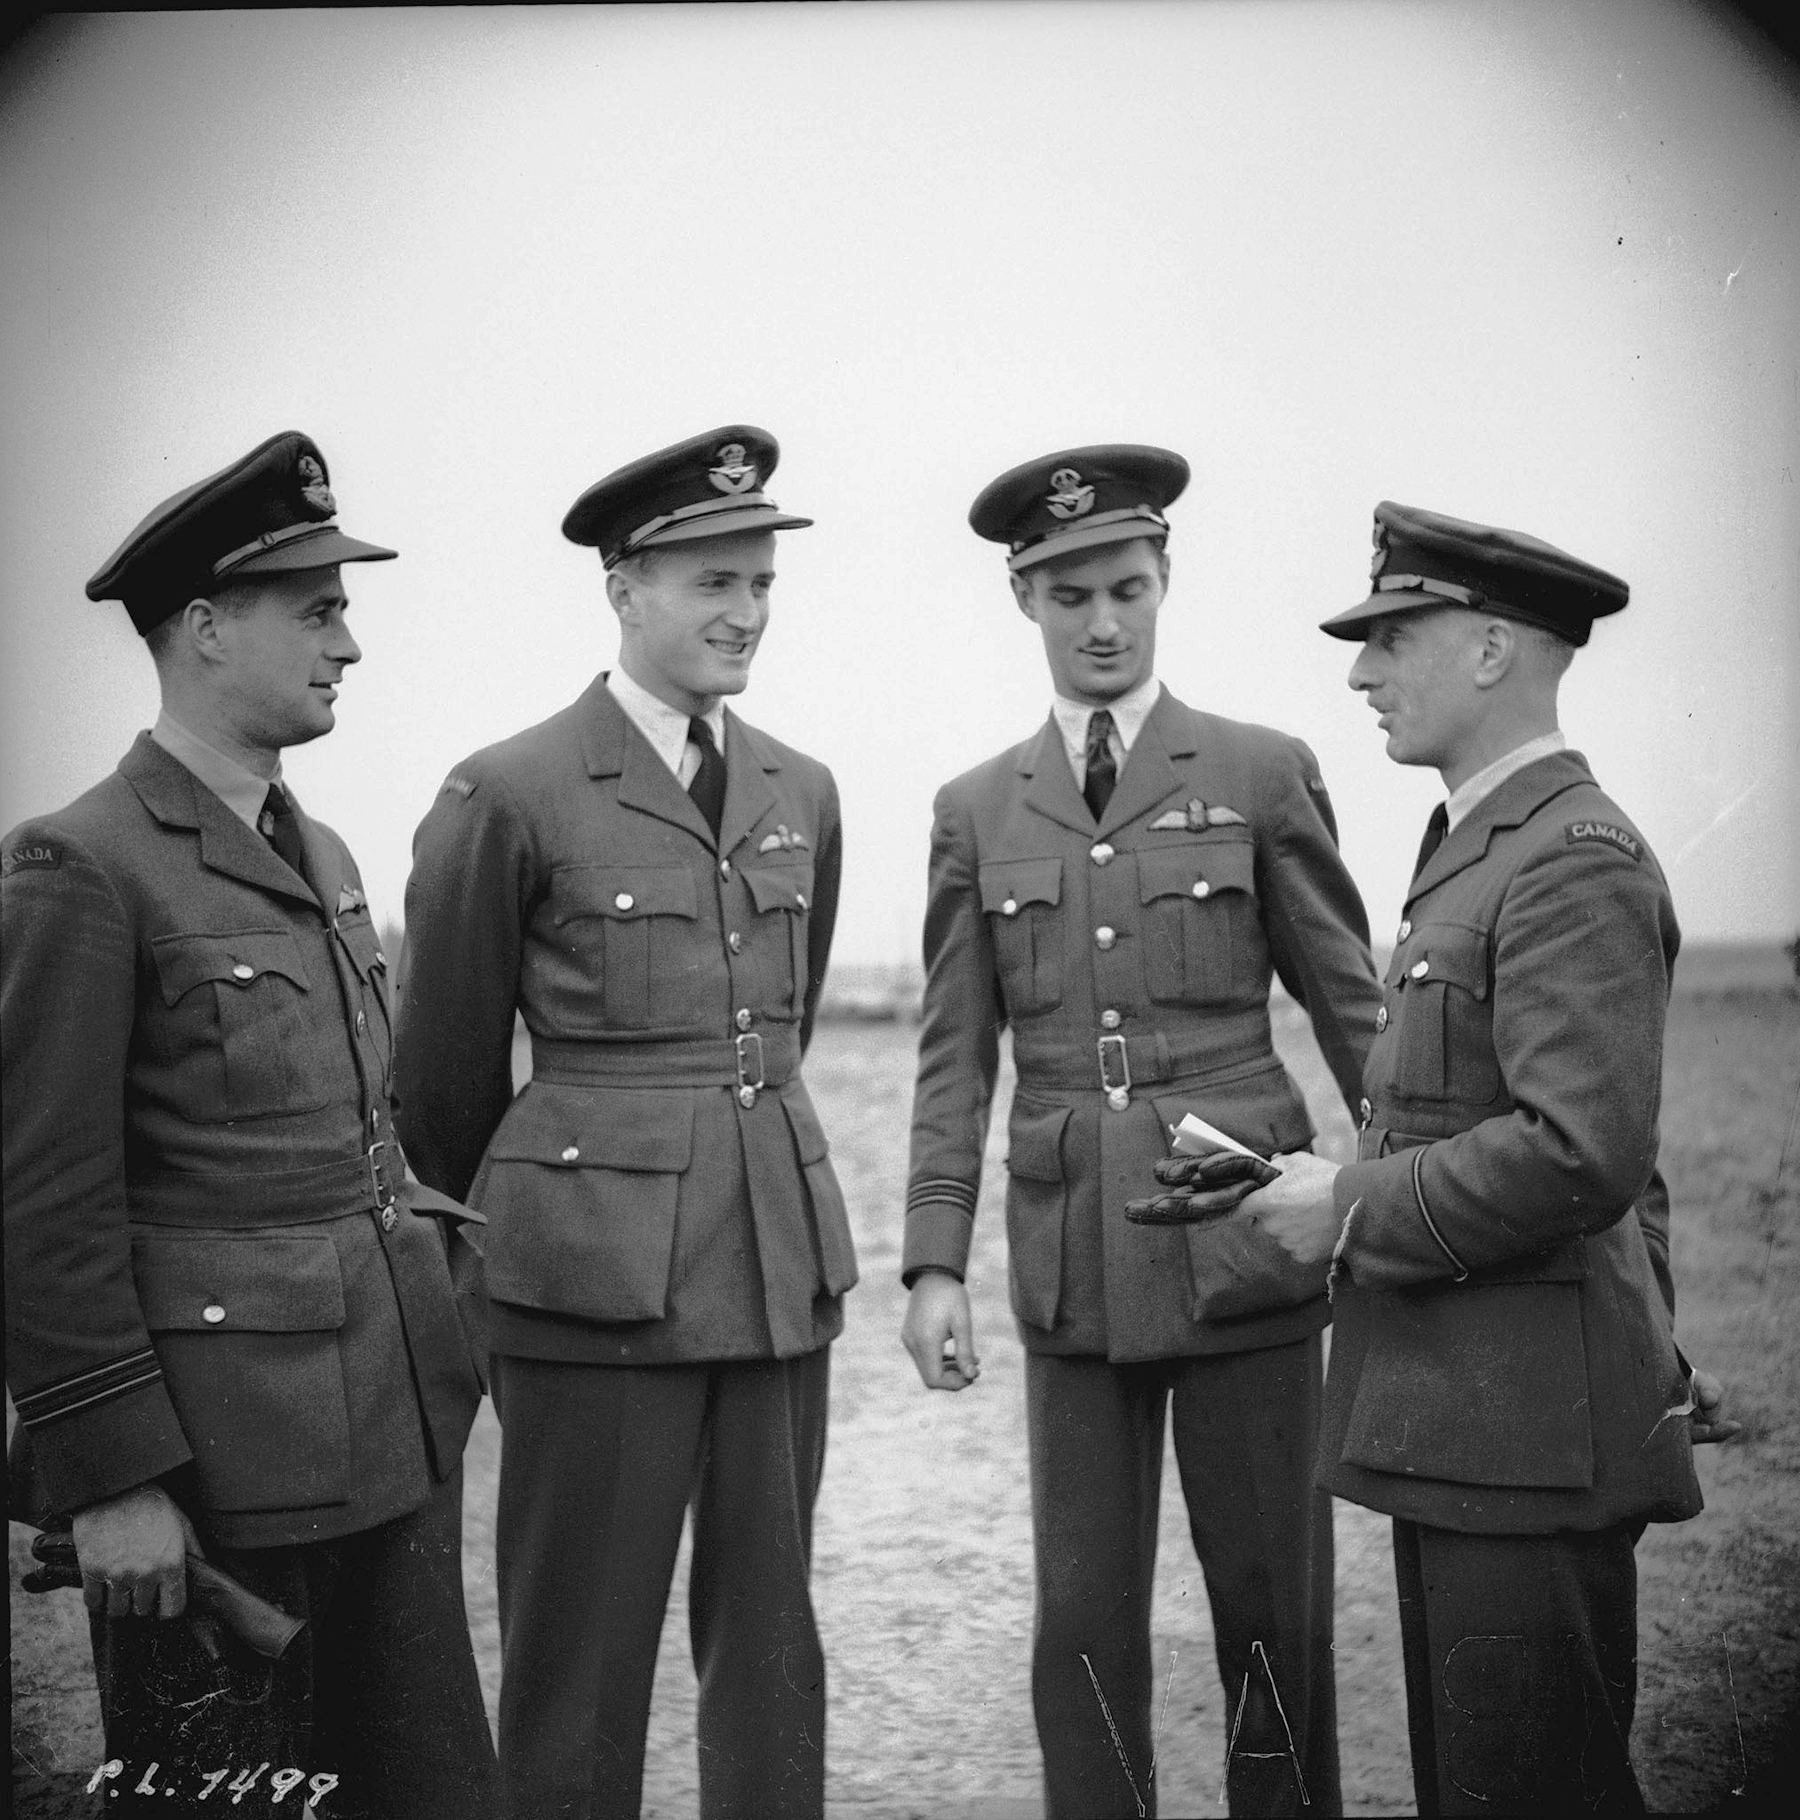 417 Canadian Squadron members Flight Lieutenant F. B. Foster (left) and Squadron Leader Paul Brooks Pitcher, from Montreal, Quebec; and Flight Lieutenant W.H. Pentland, from Calgary, Alberta, are briefed by Flying Officer J.M. Rutherford (adjutant), also from Montreal, on April 16, 1942. PHOTO: DND